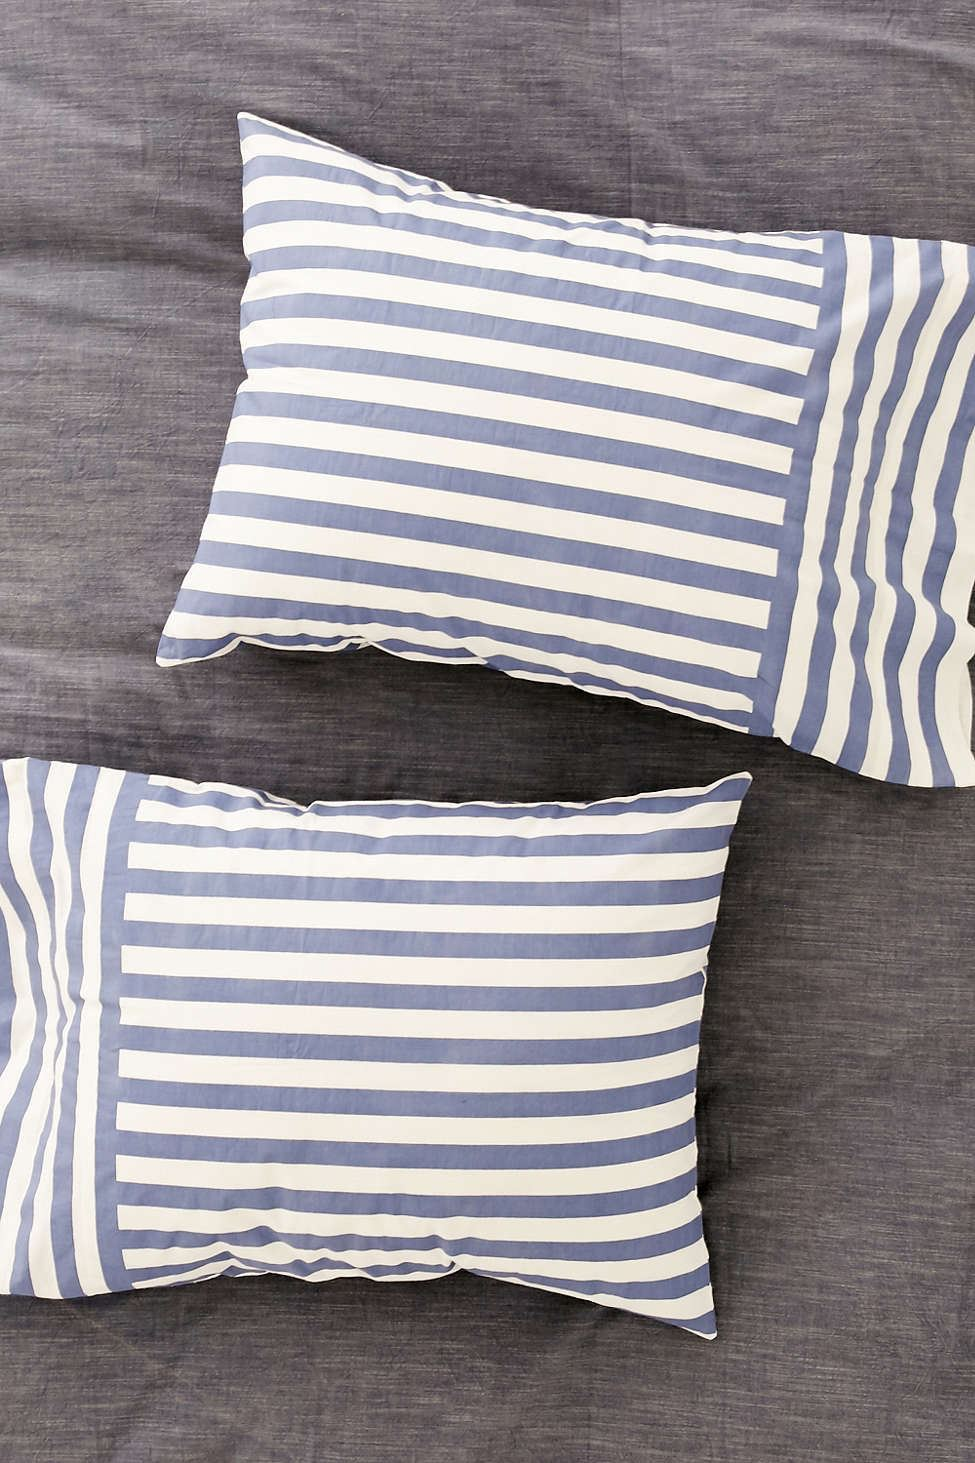 Striped pillowcases from Urban Outfitters